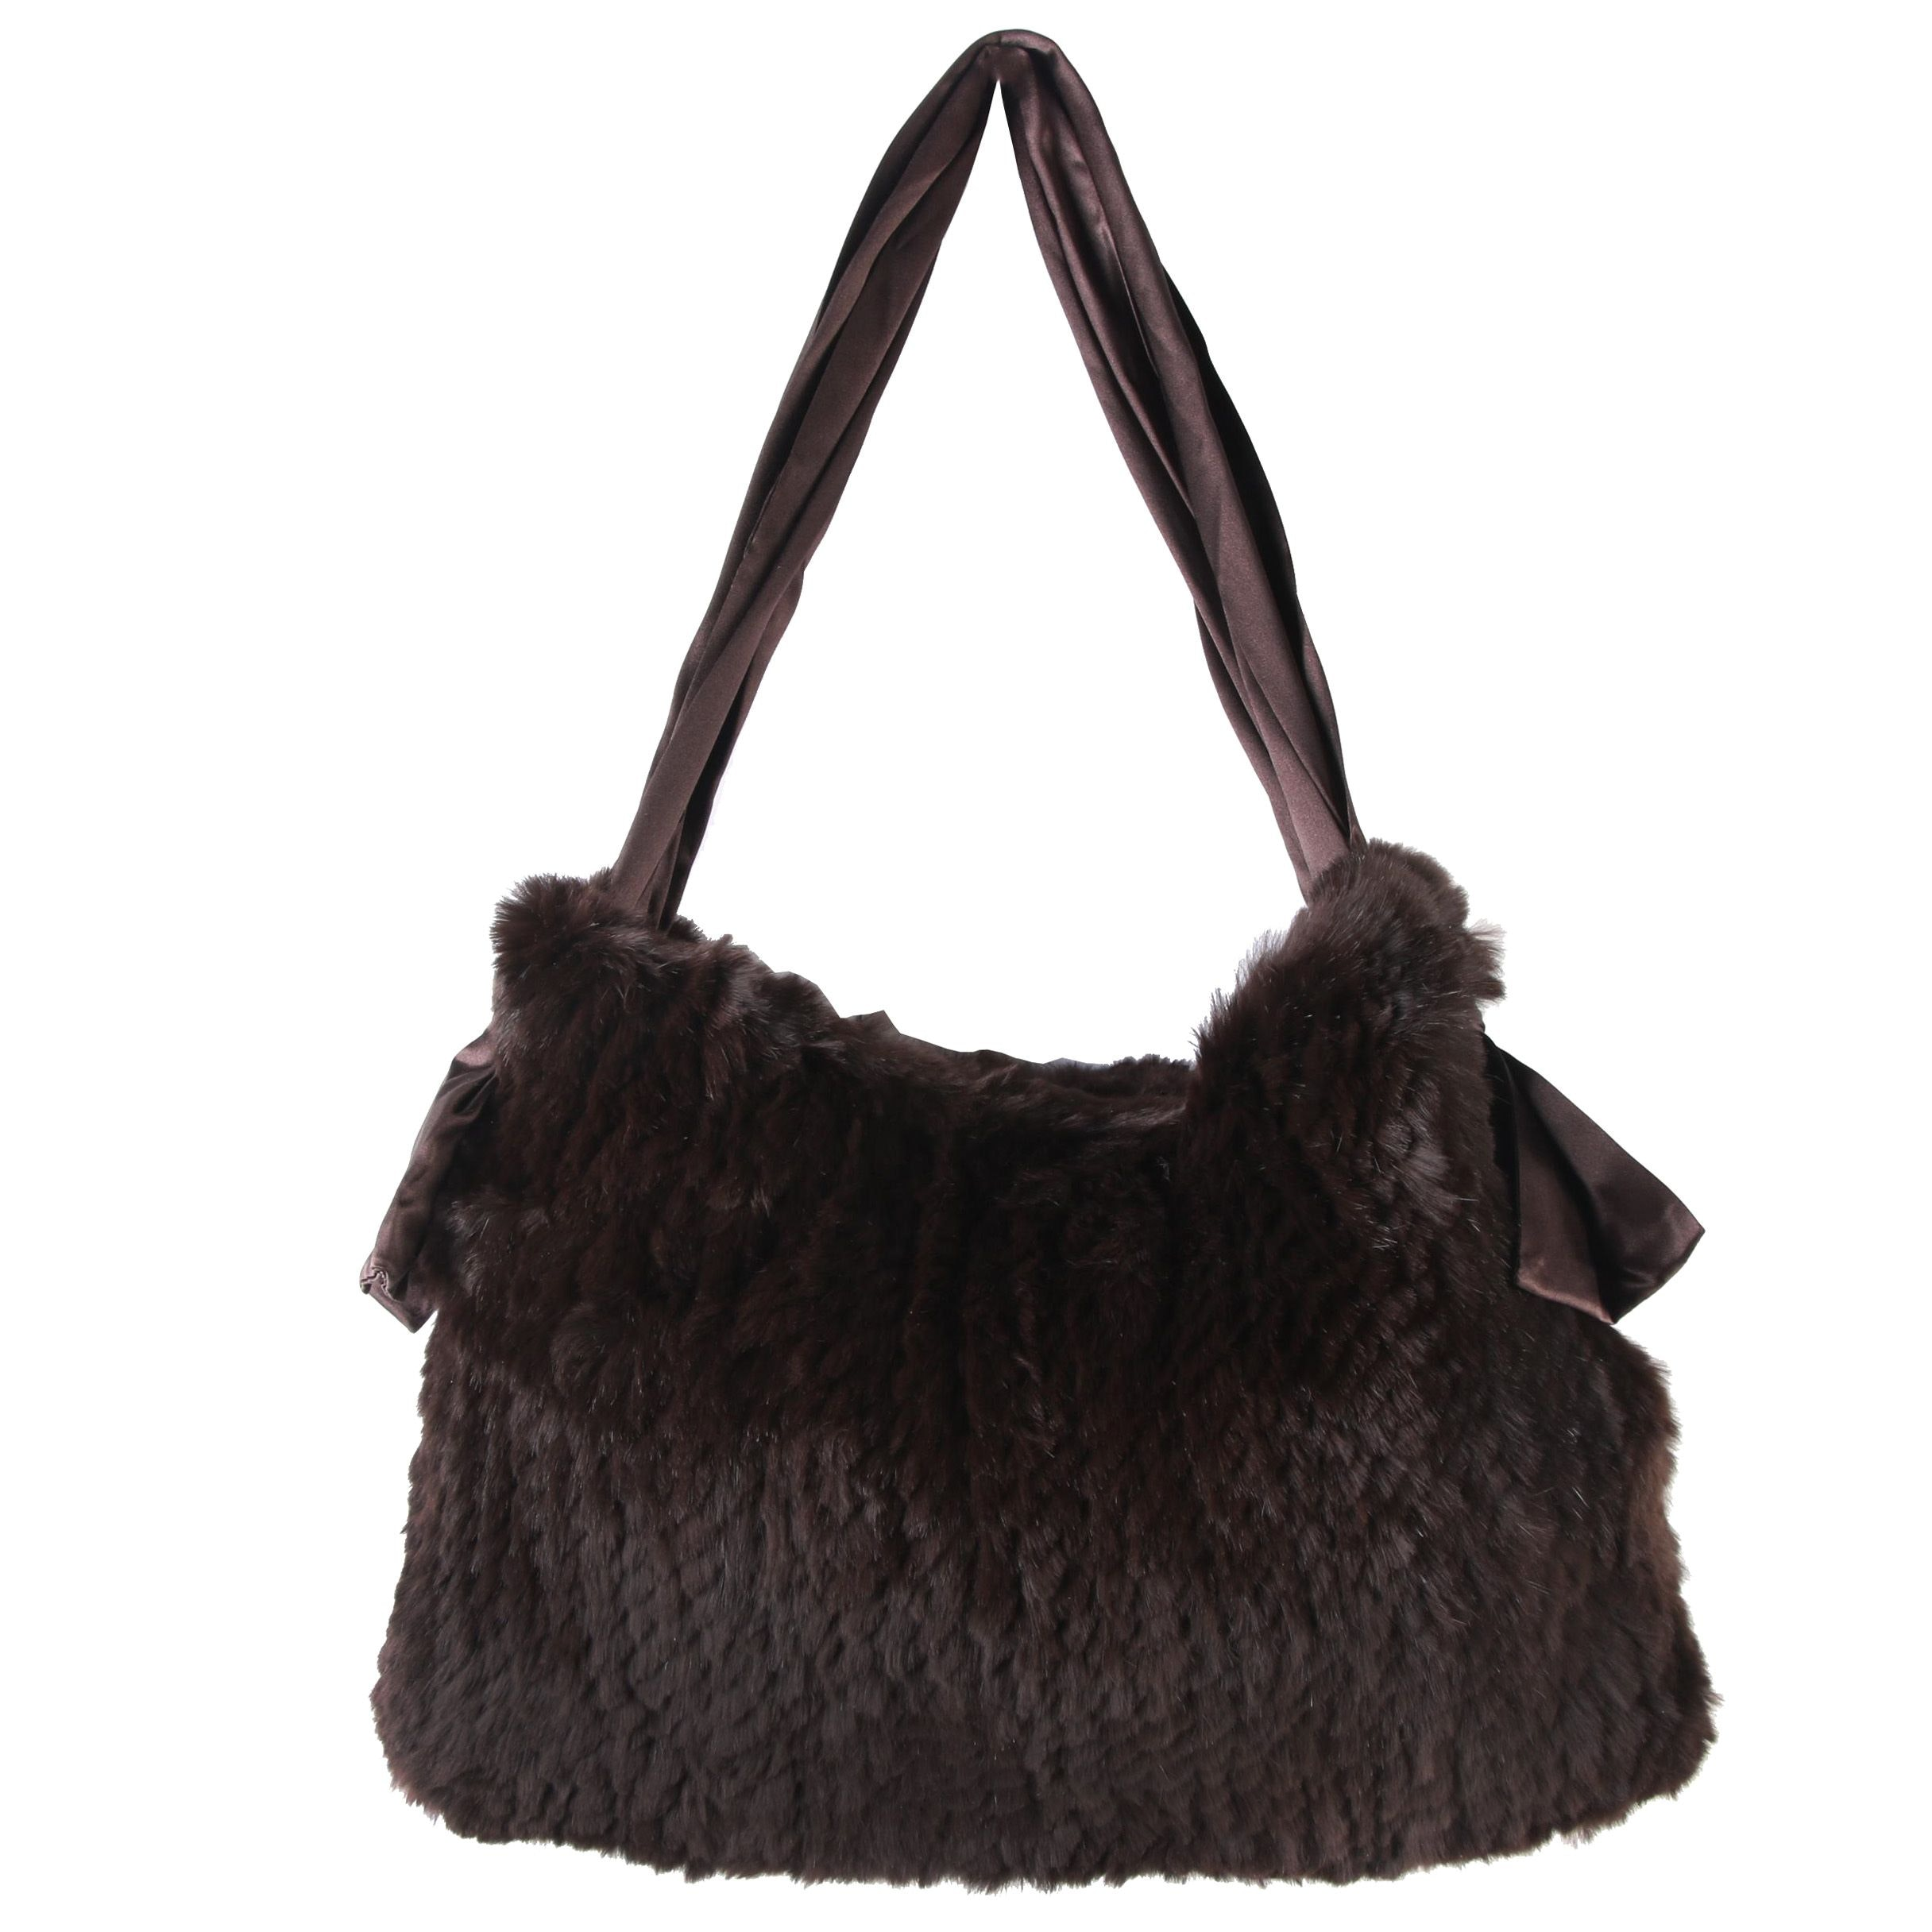 Funky East Dark Brown Knitted Rabbit Fur and Satin Shoulder Bag